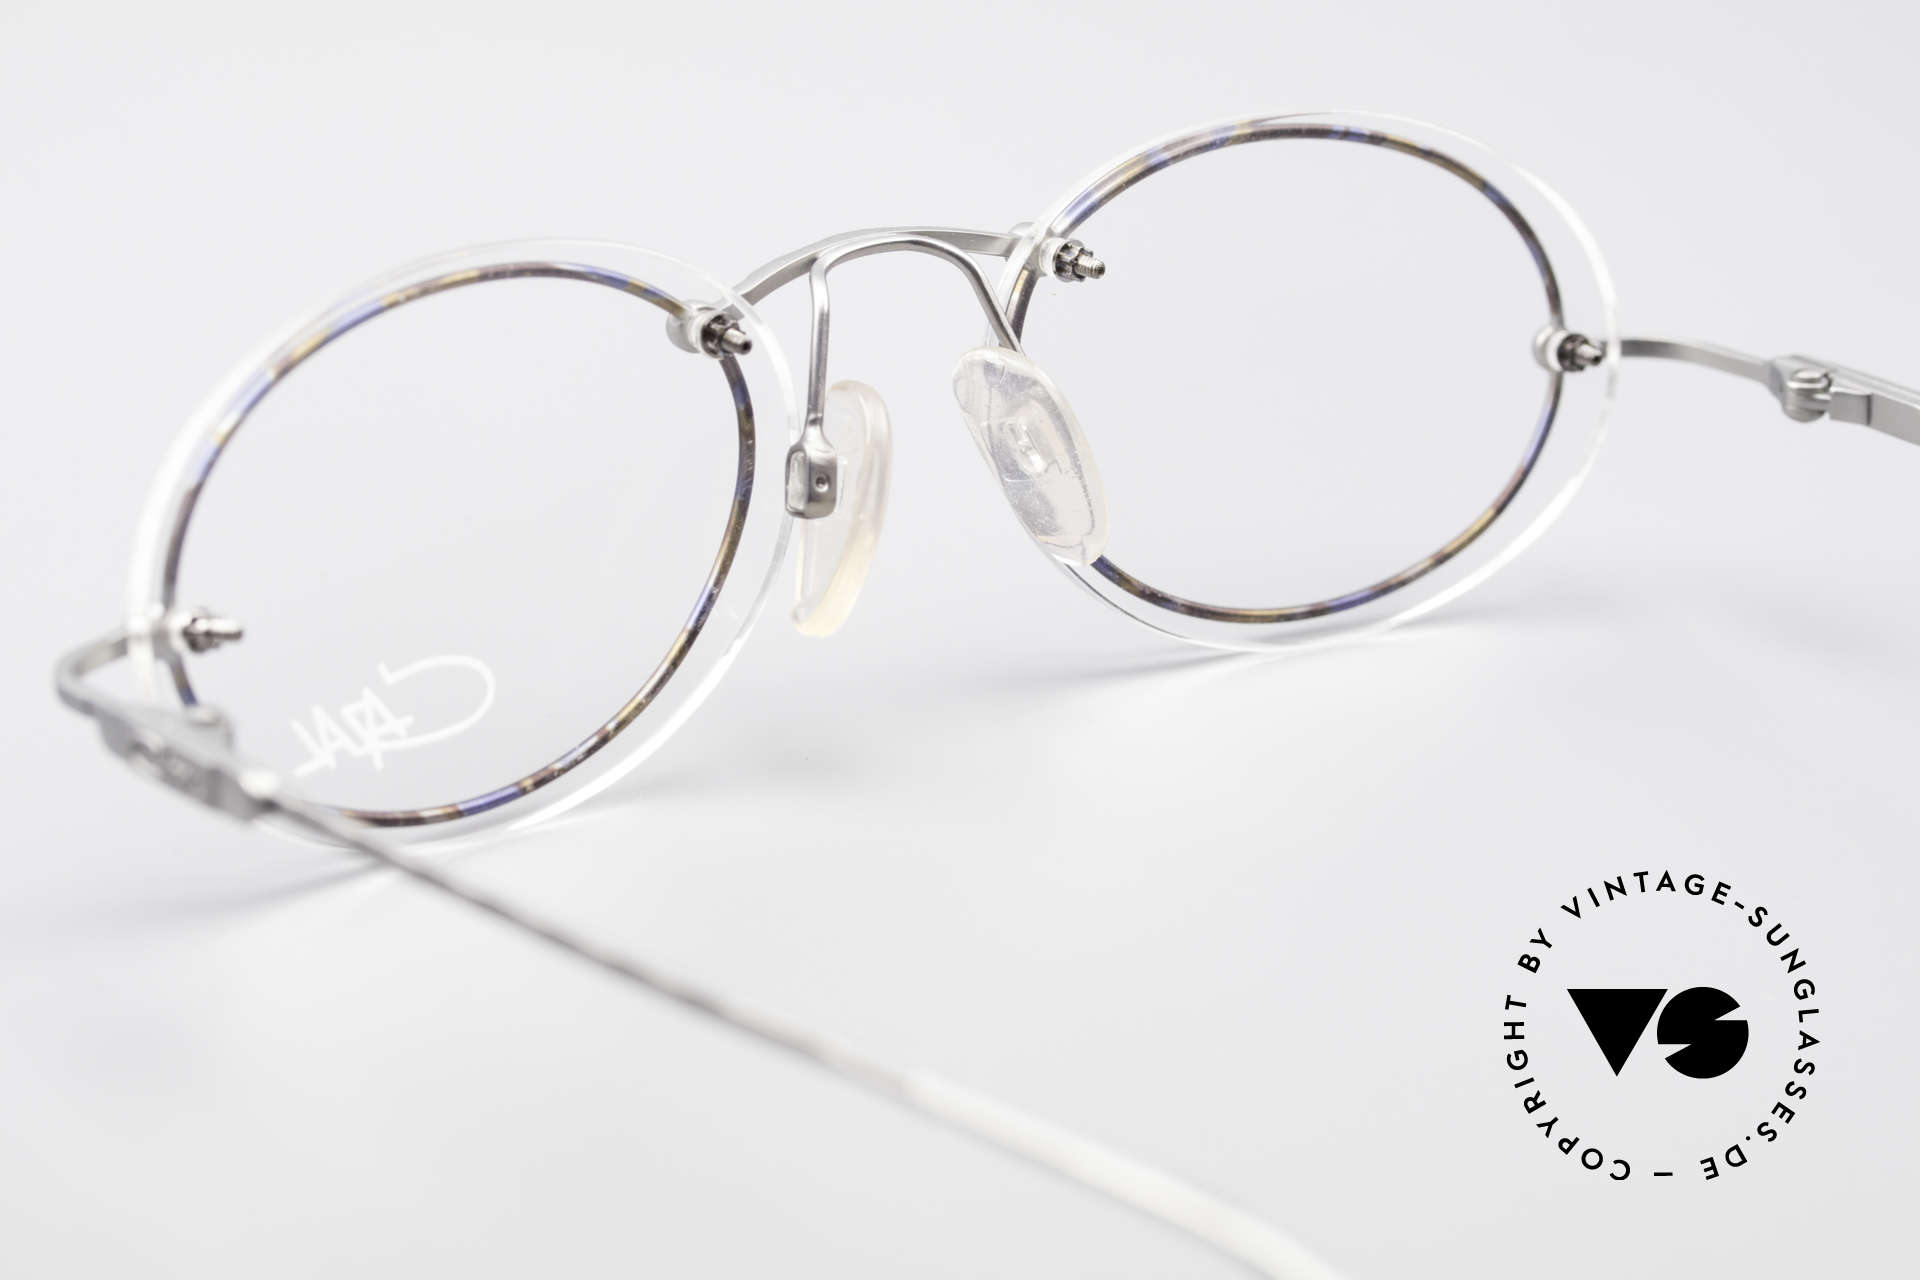 Cazal 770 Oval Vintage Frame No Retro, oval demo lenses can be replaced with prescriptions, Made for Men and Women